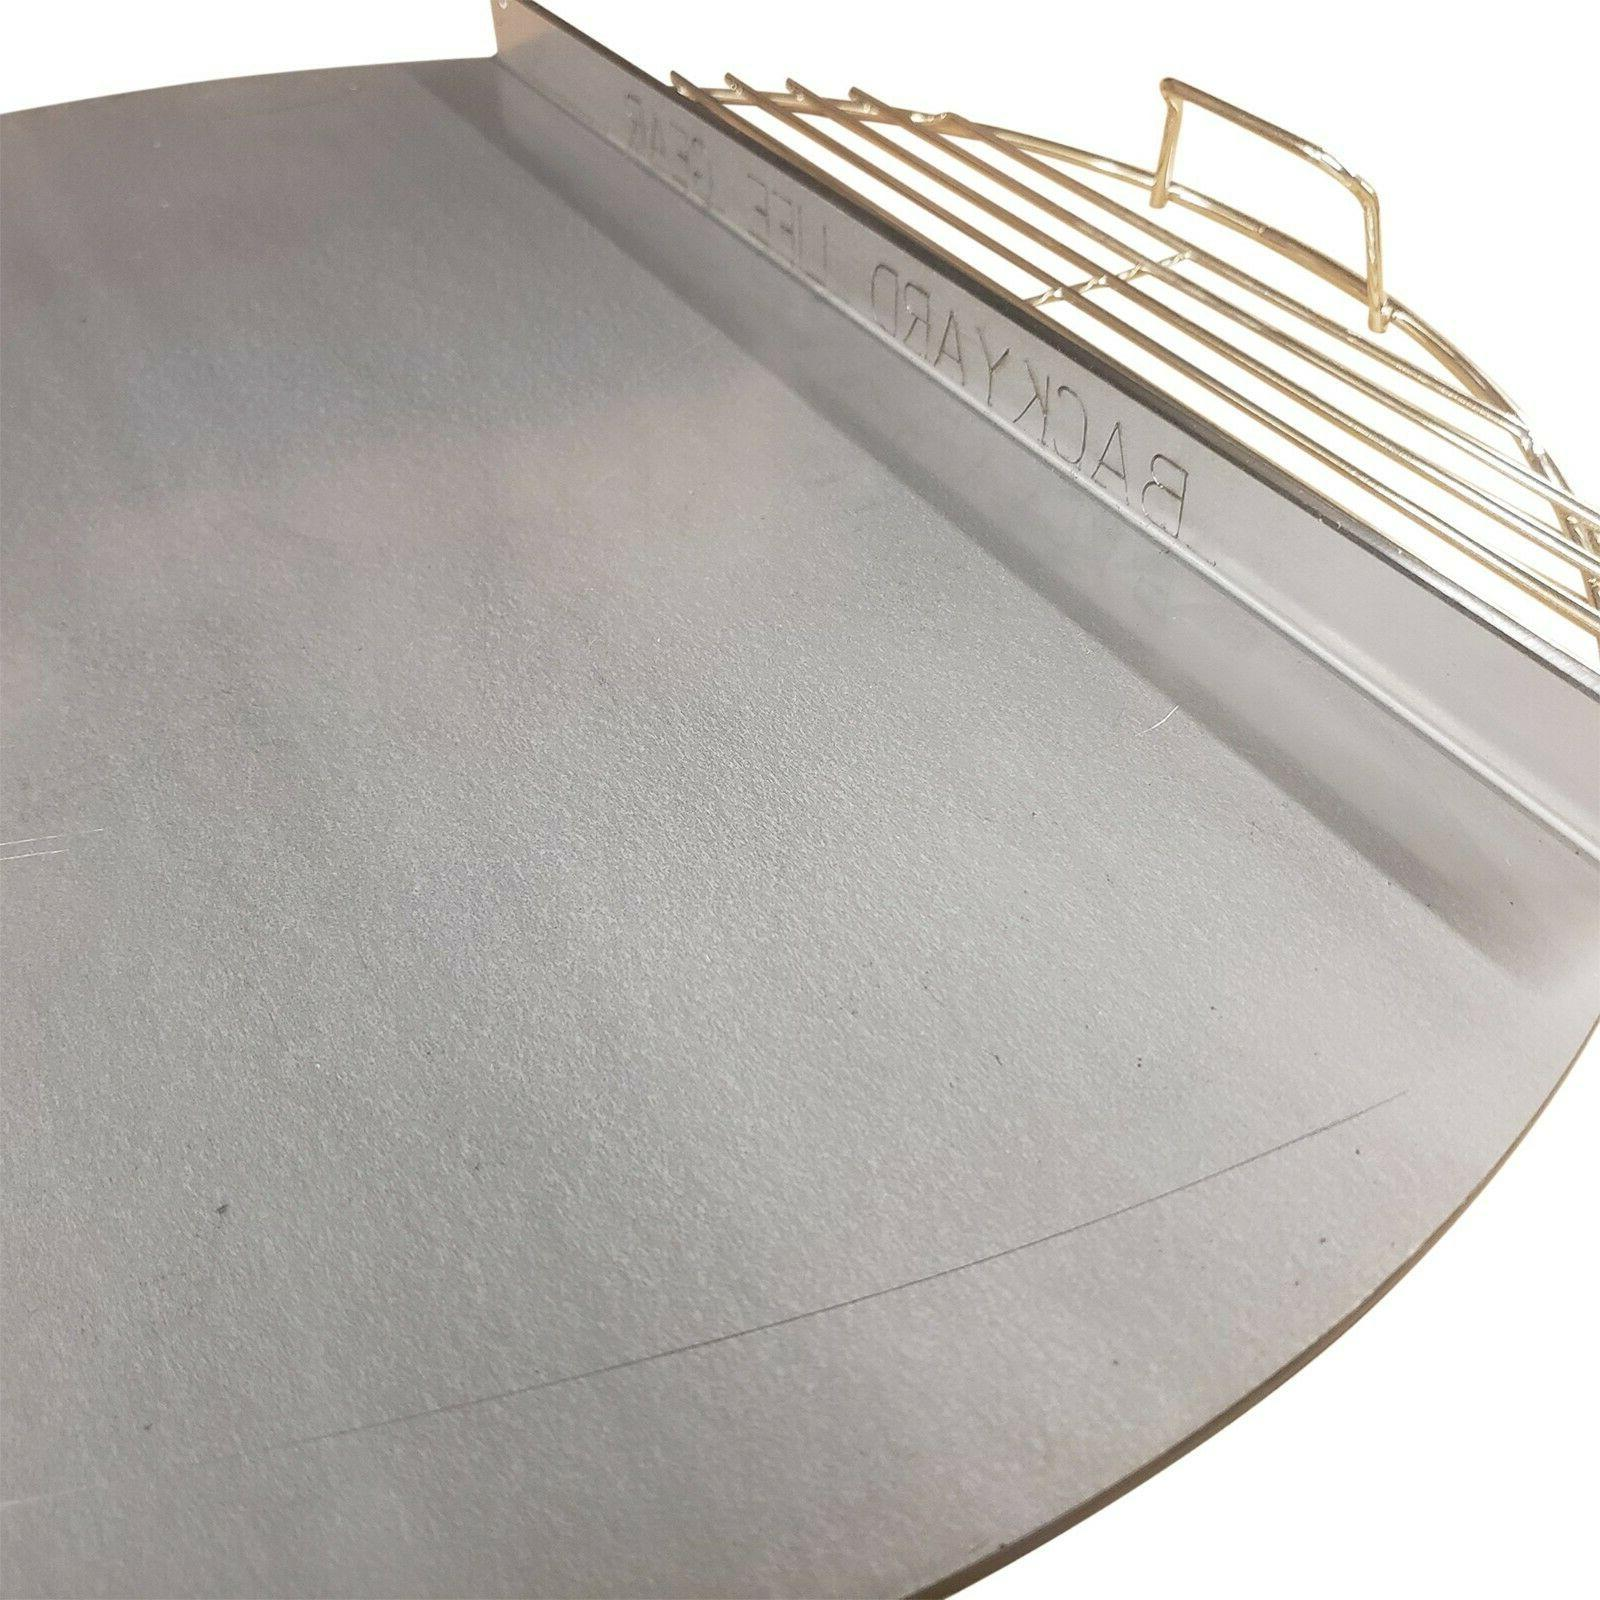 Griddle Kettle Charcoal Grill 18-inch, 22-inch, 7